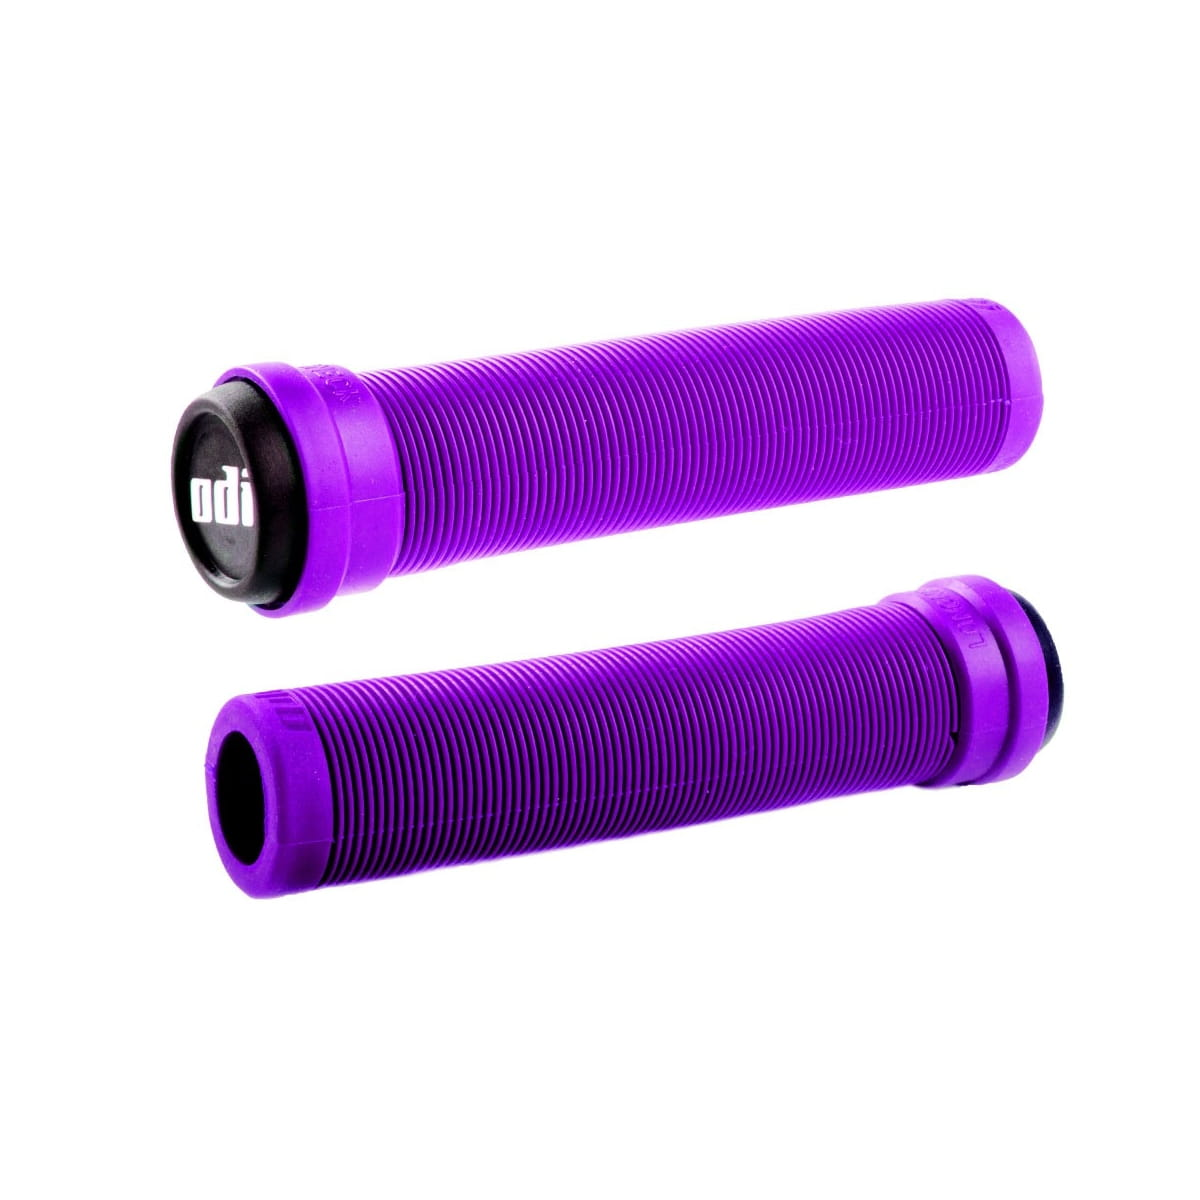 odi_bmx_flangless_143_purple.jpg